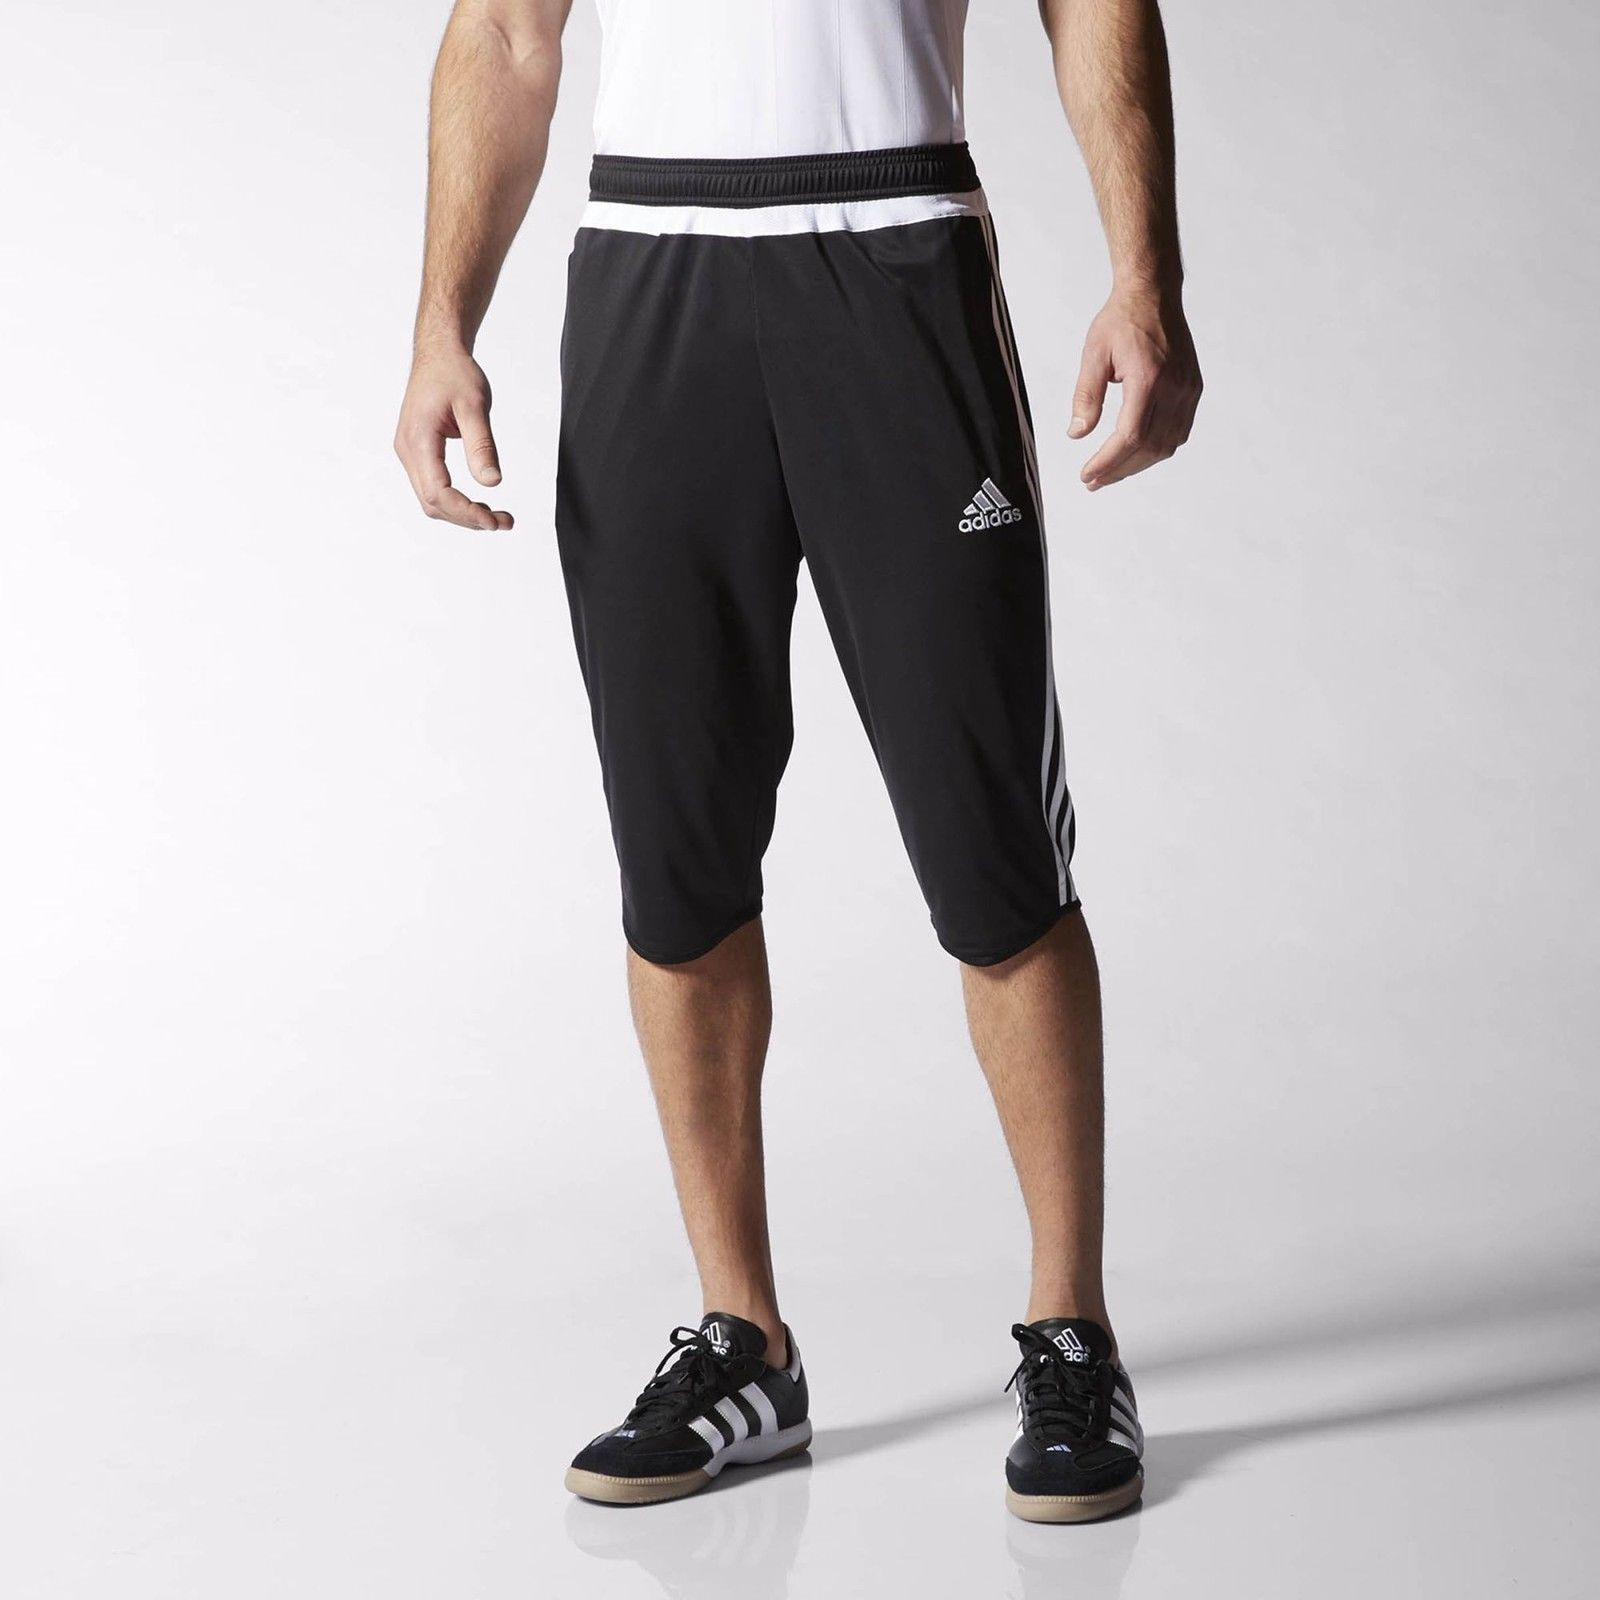 adidas Tiro 15 Three-Quarter Pants Men's Black in Clothing, Shoes &  Accessories, Men's Clothing, Athletic Apparel